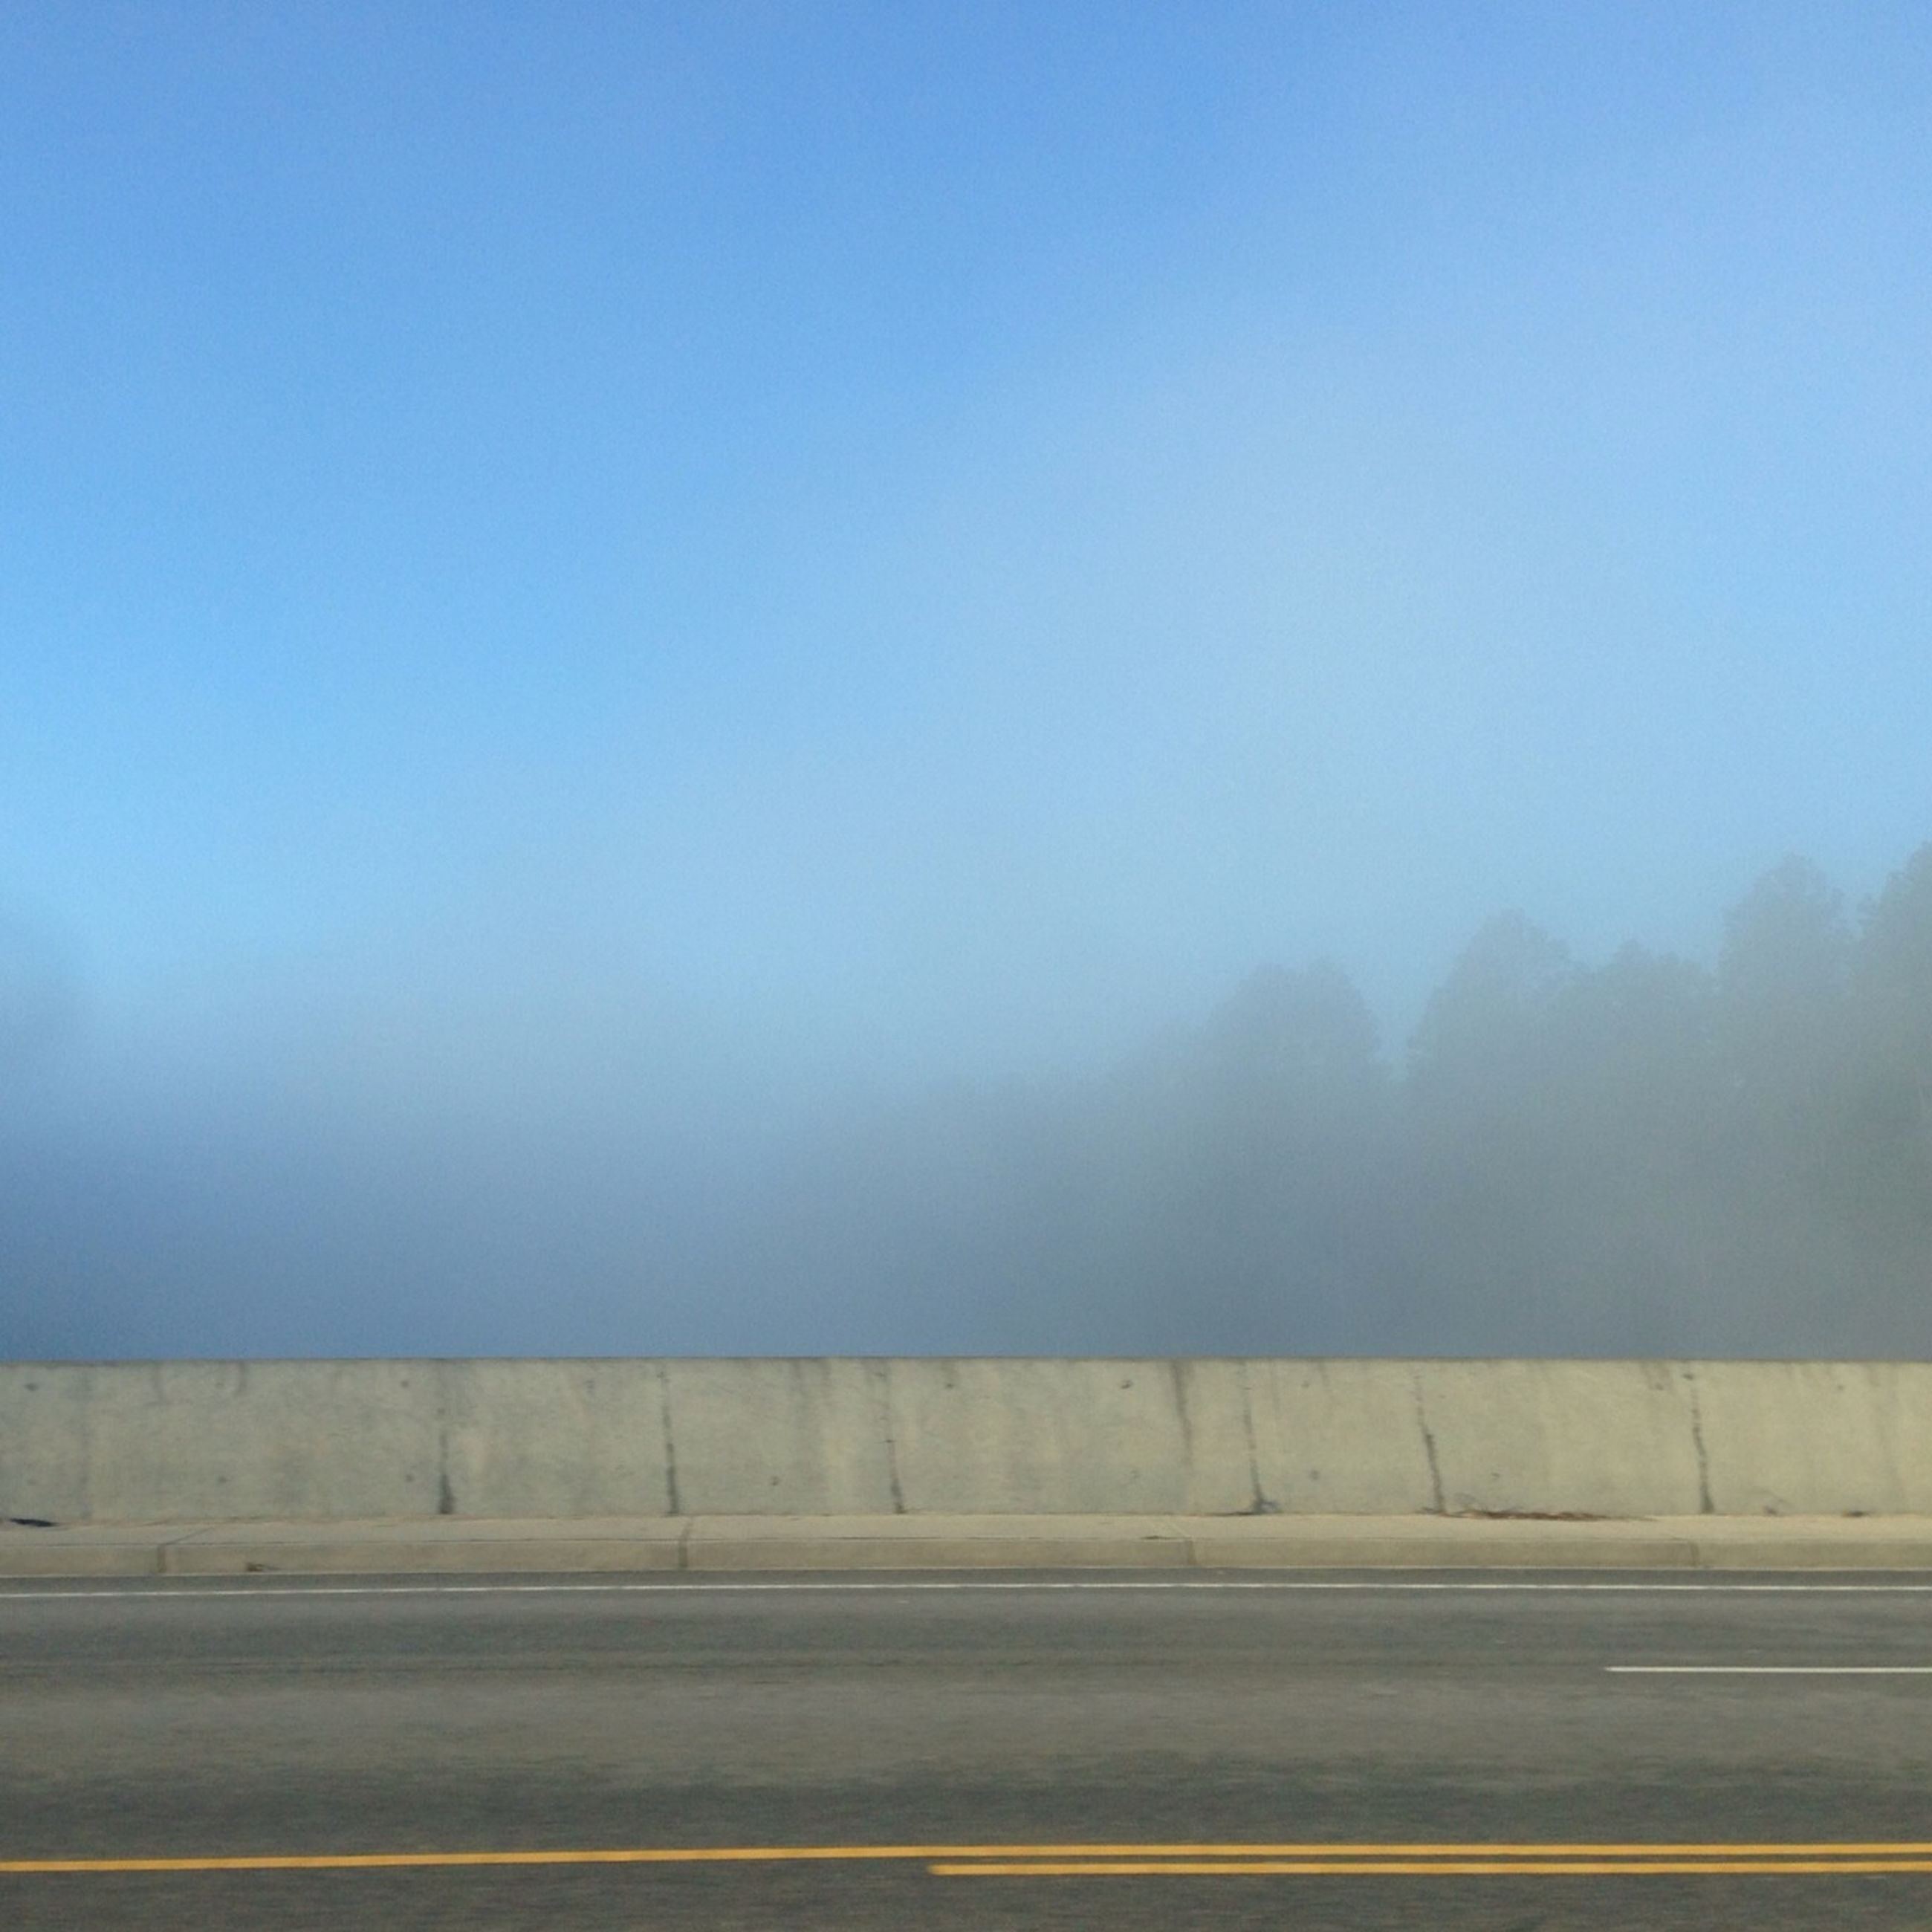 copy space, clear sky, foggy, road, sky, transportation, tranquility, tranquil scene, weather, landscape, nature, blue, scenics, built structure, beauty in nature, day, outdoors, no people, architecture